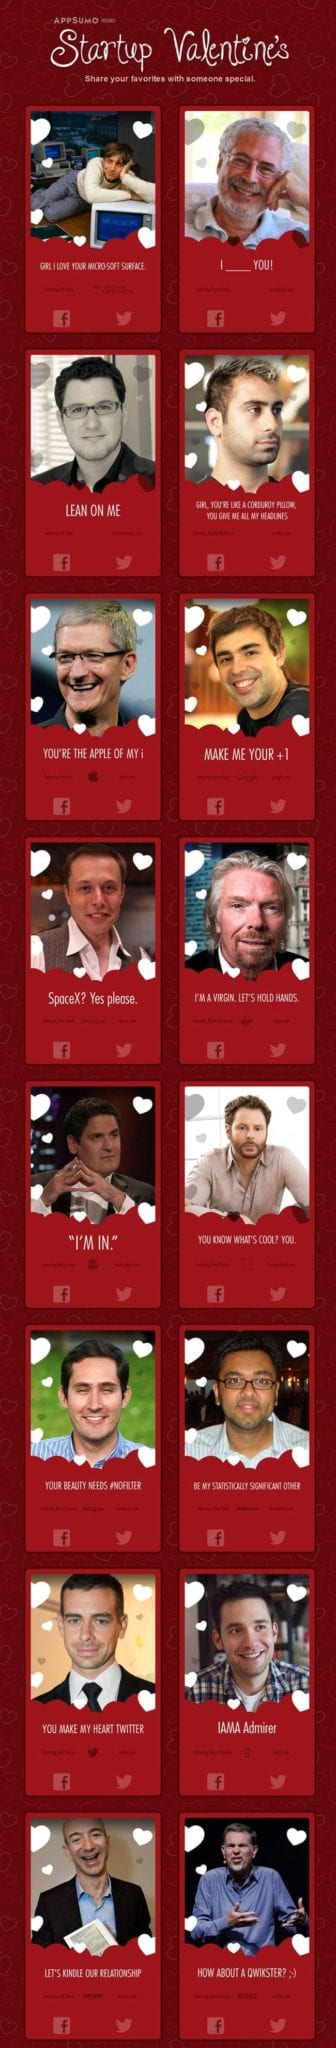 You gotta love these geeky Valentines from App Sumo!